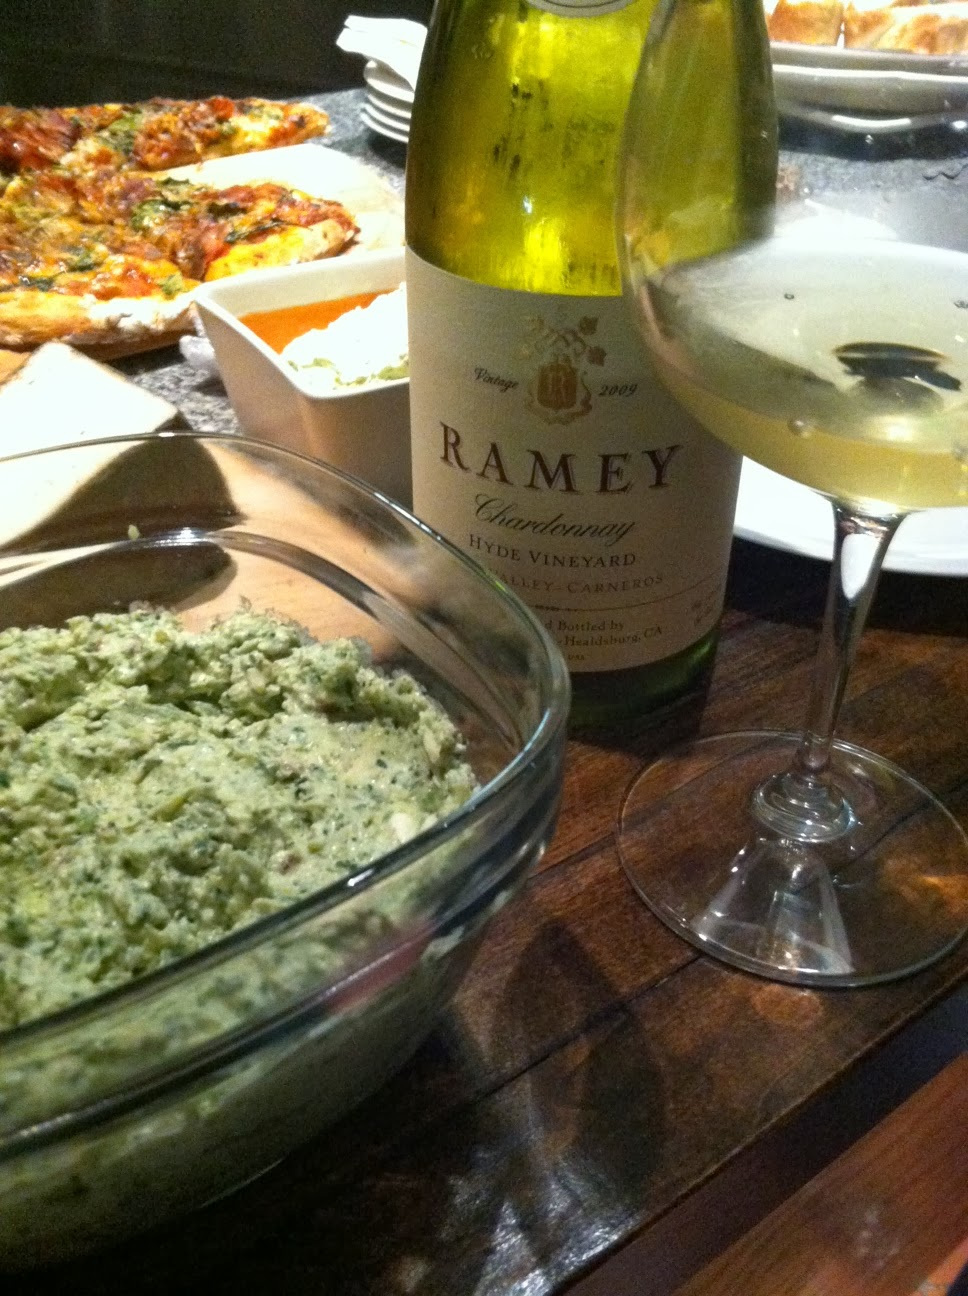 Artichoke dip and other appetizers served with Ramey Napa Chardonnay